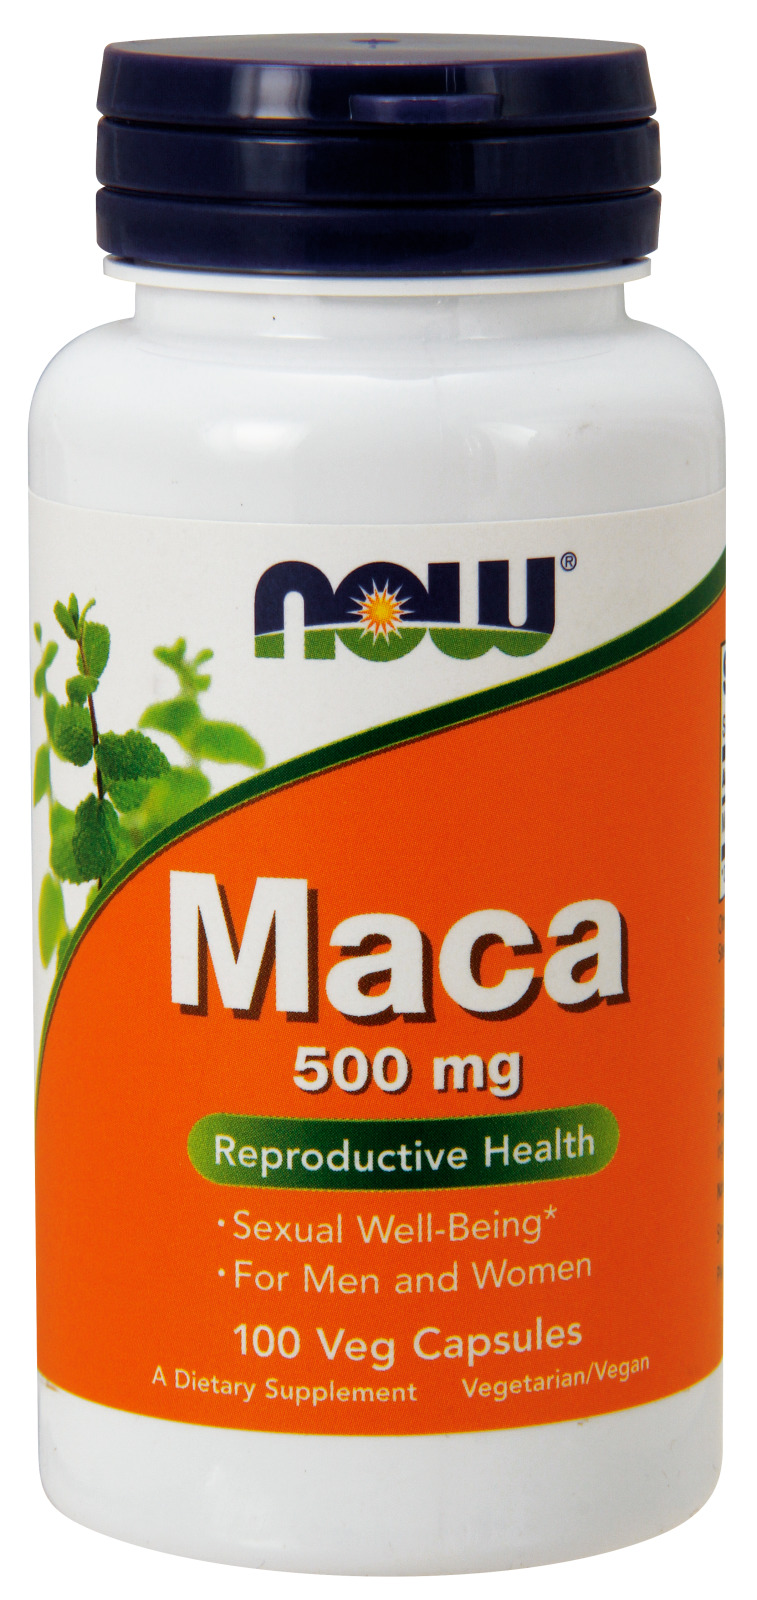 Maca 500 mg 100 caps by NOW